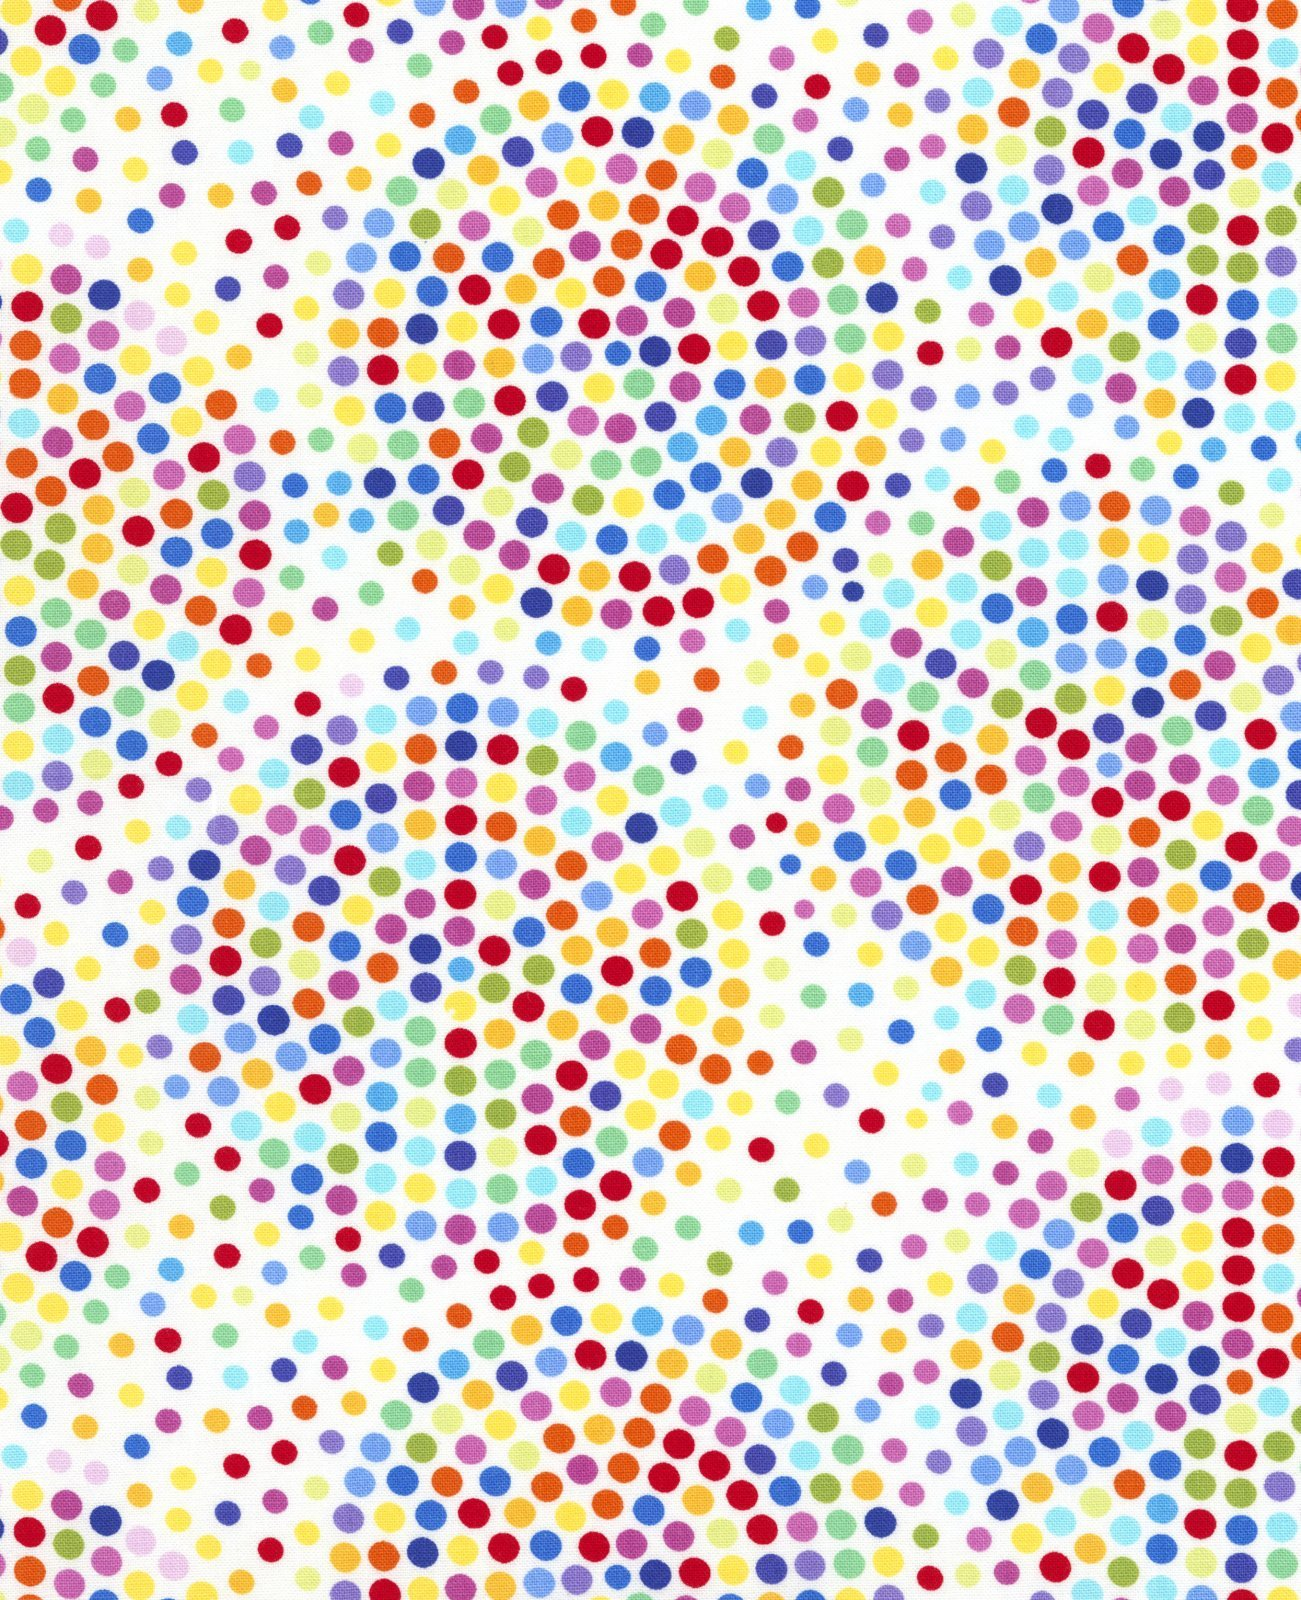 Timeless Treasures Prism 5385 White Multicolor Dots